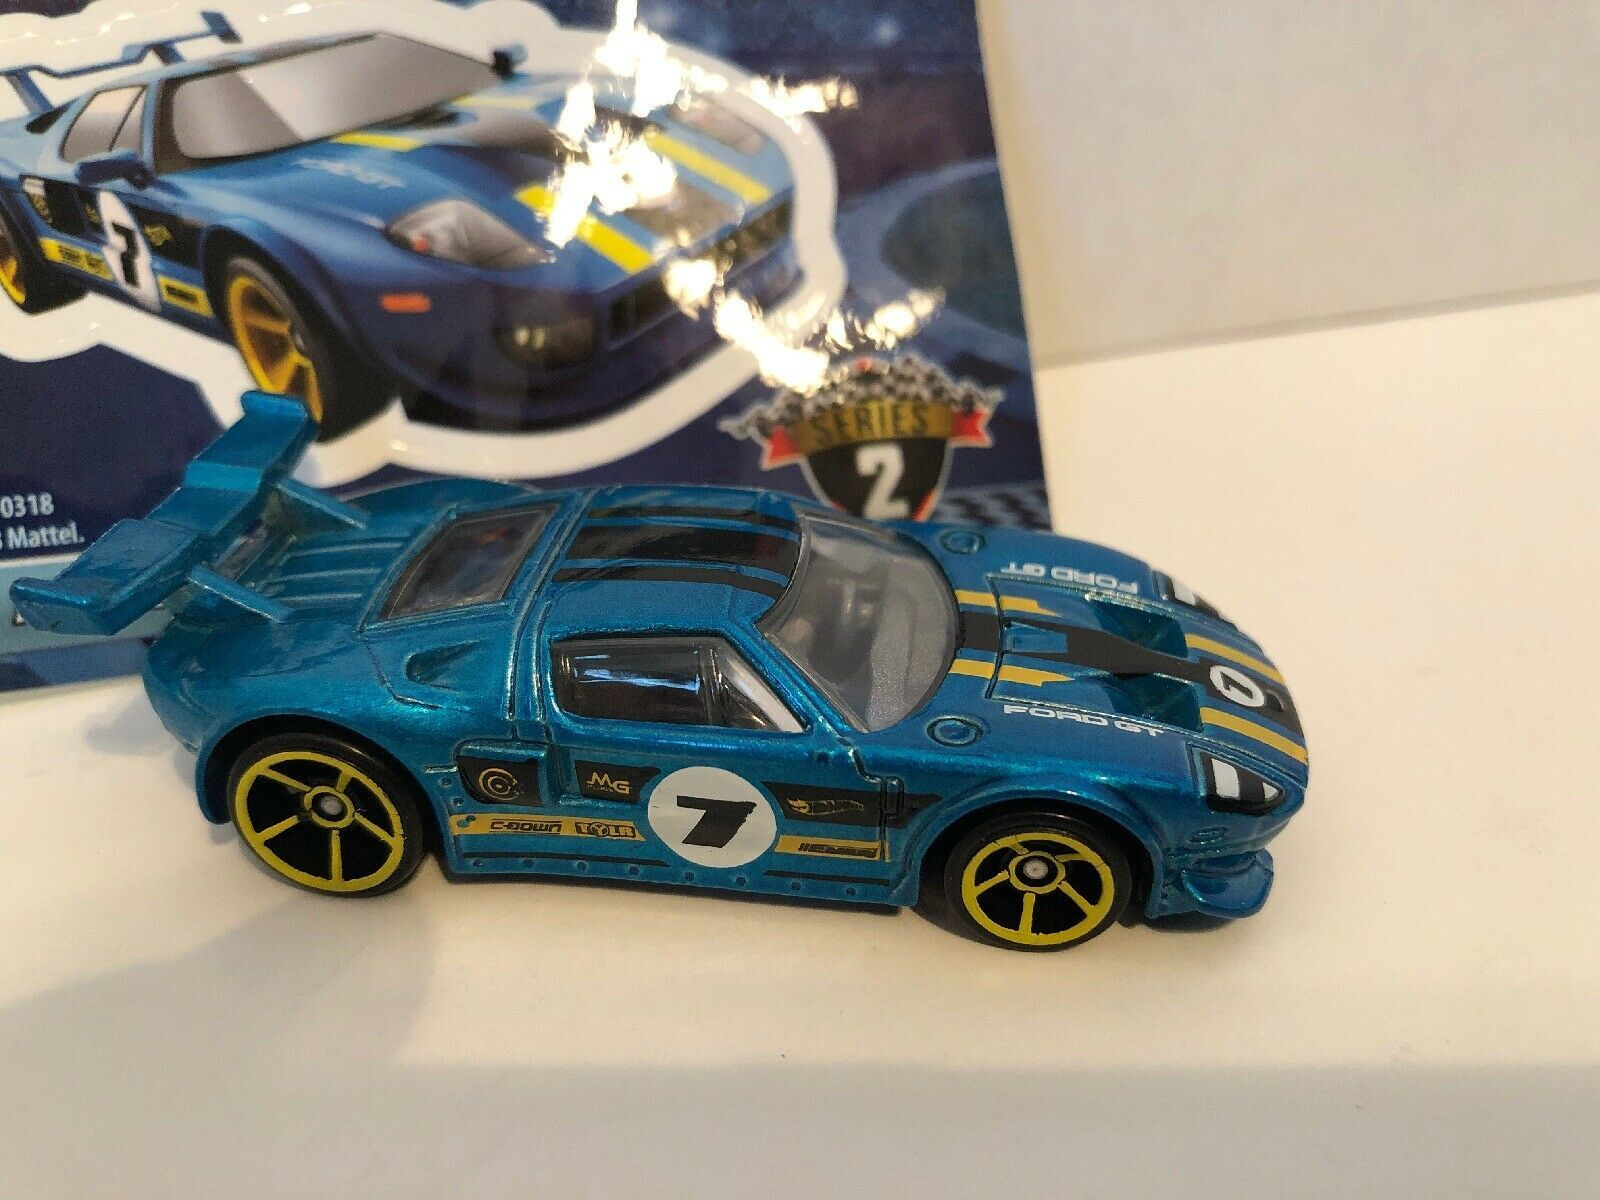 Hot Wheels 2019 Mystery Models Series 2 Ford Gt 7 New In Bag Beautiful Blue Ebay Ford Gt Hot Wheels Toy Car